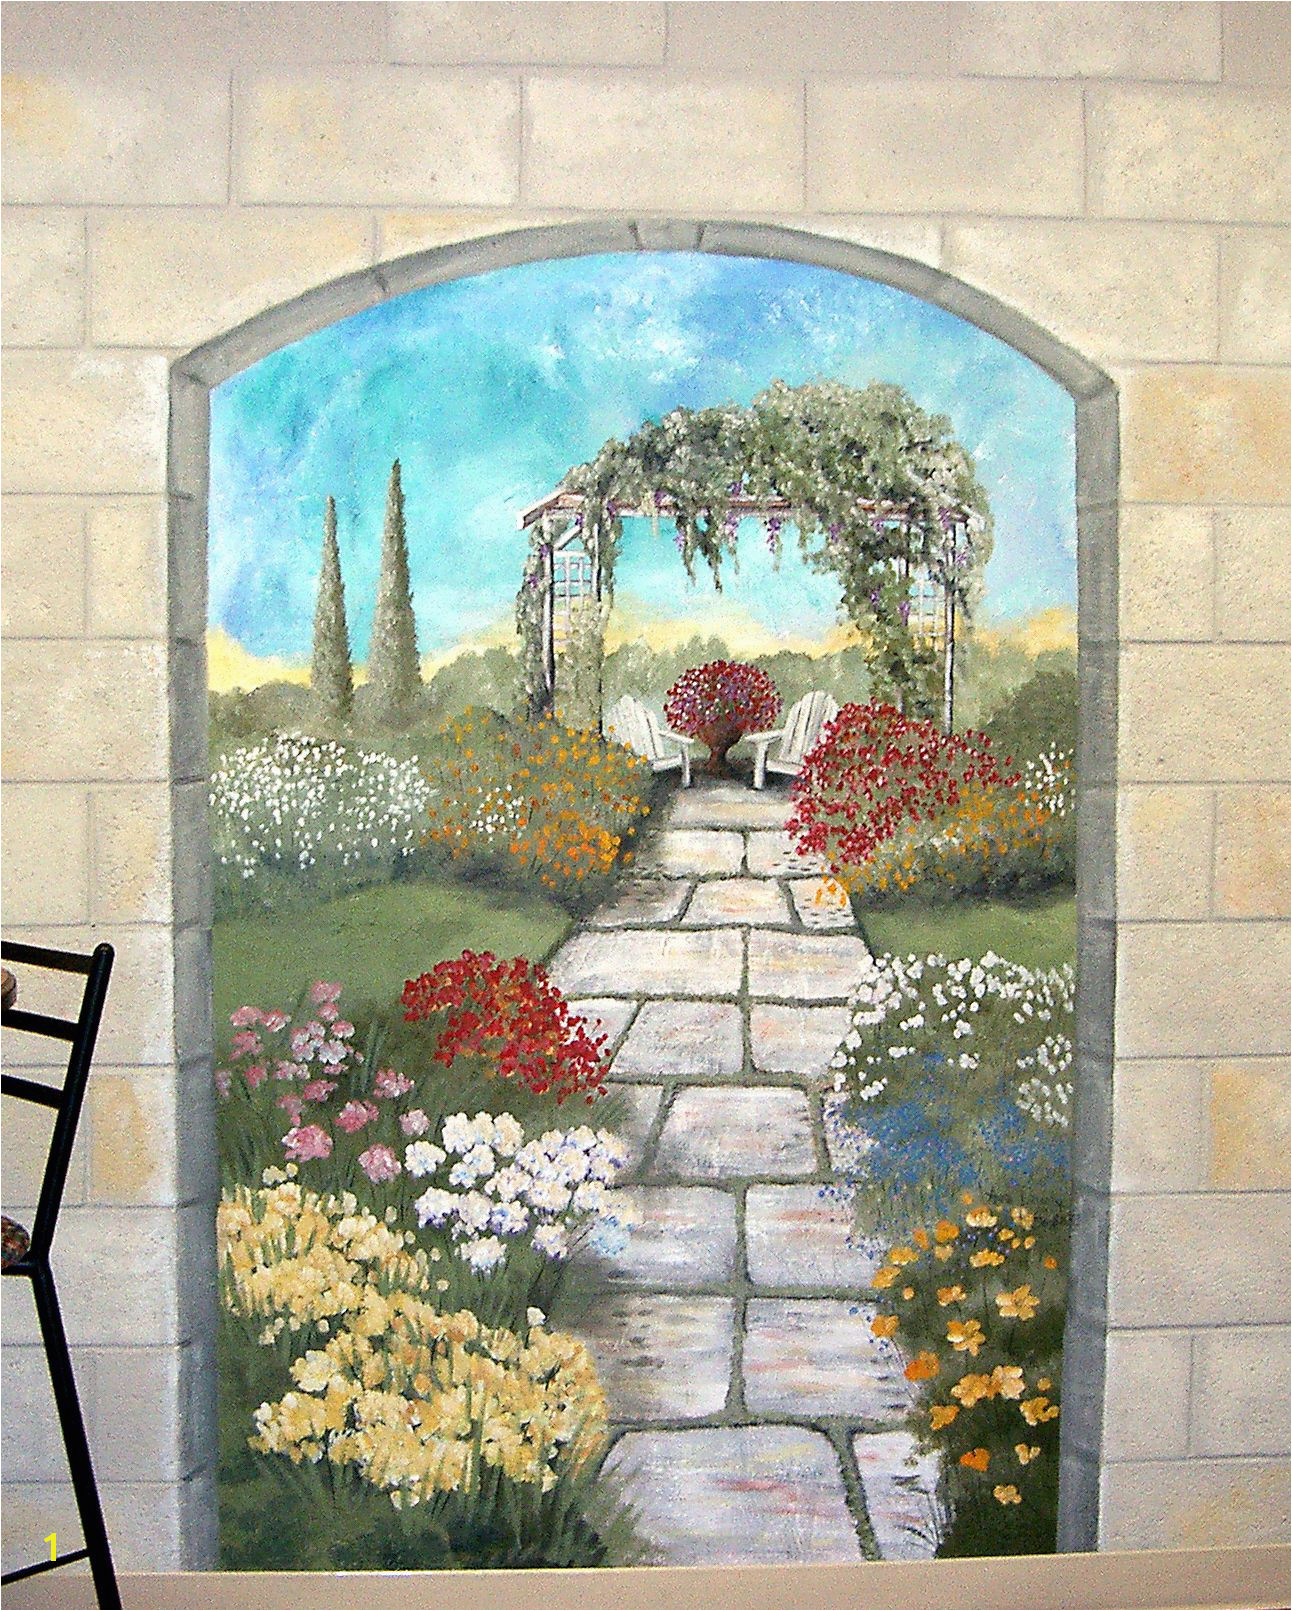 Garden mural on a cement block wall